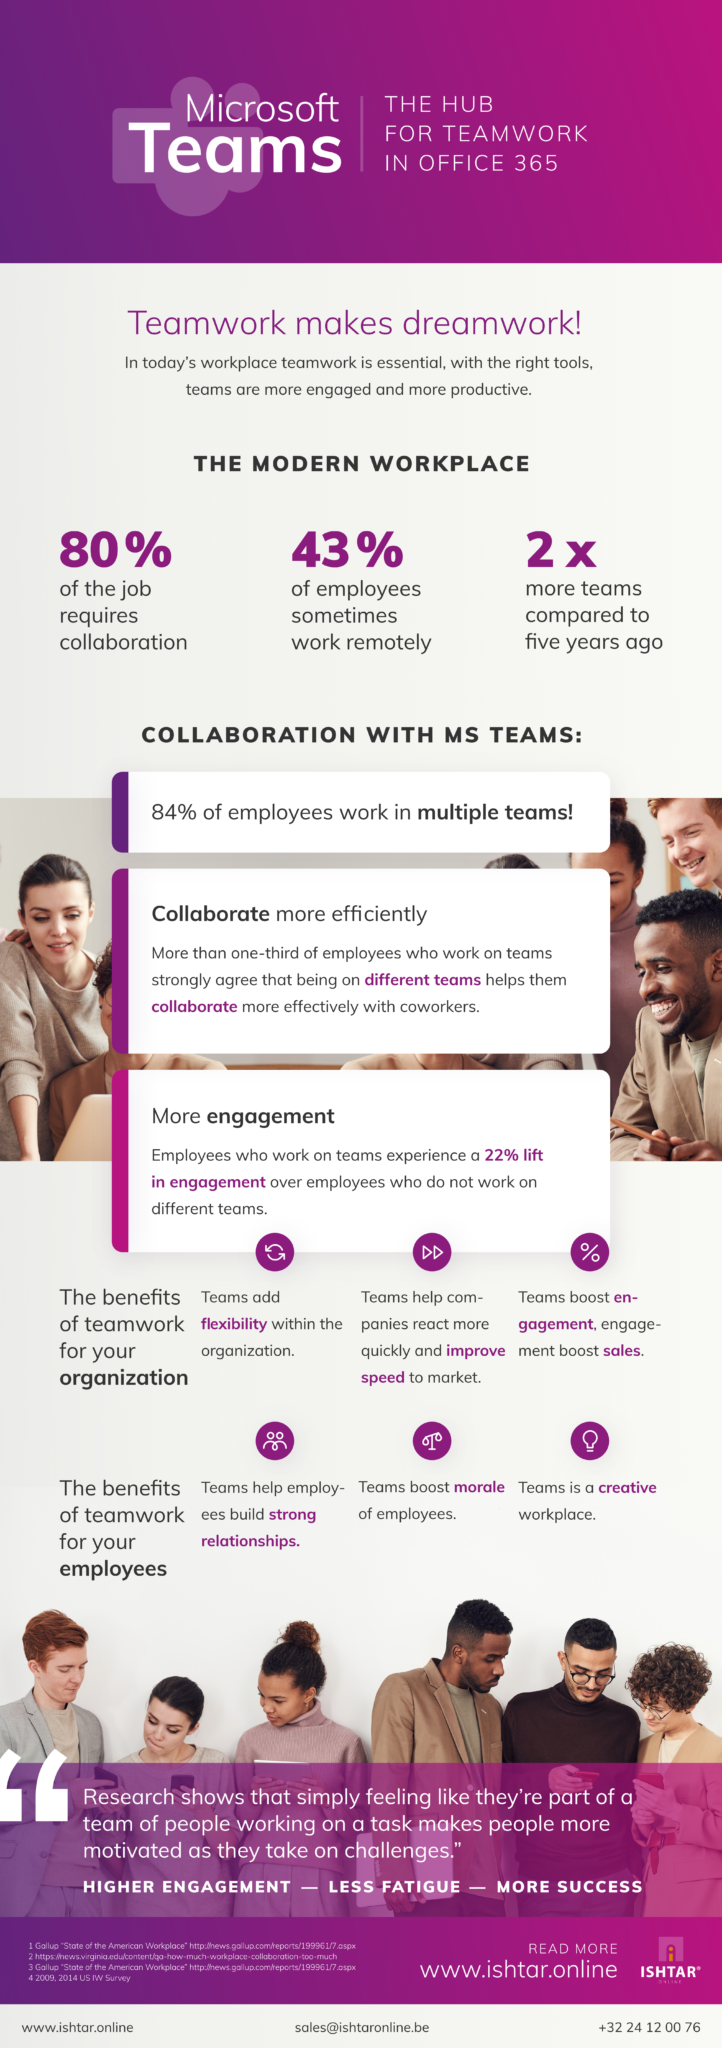 microsoft teams hub